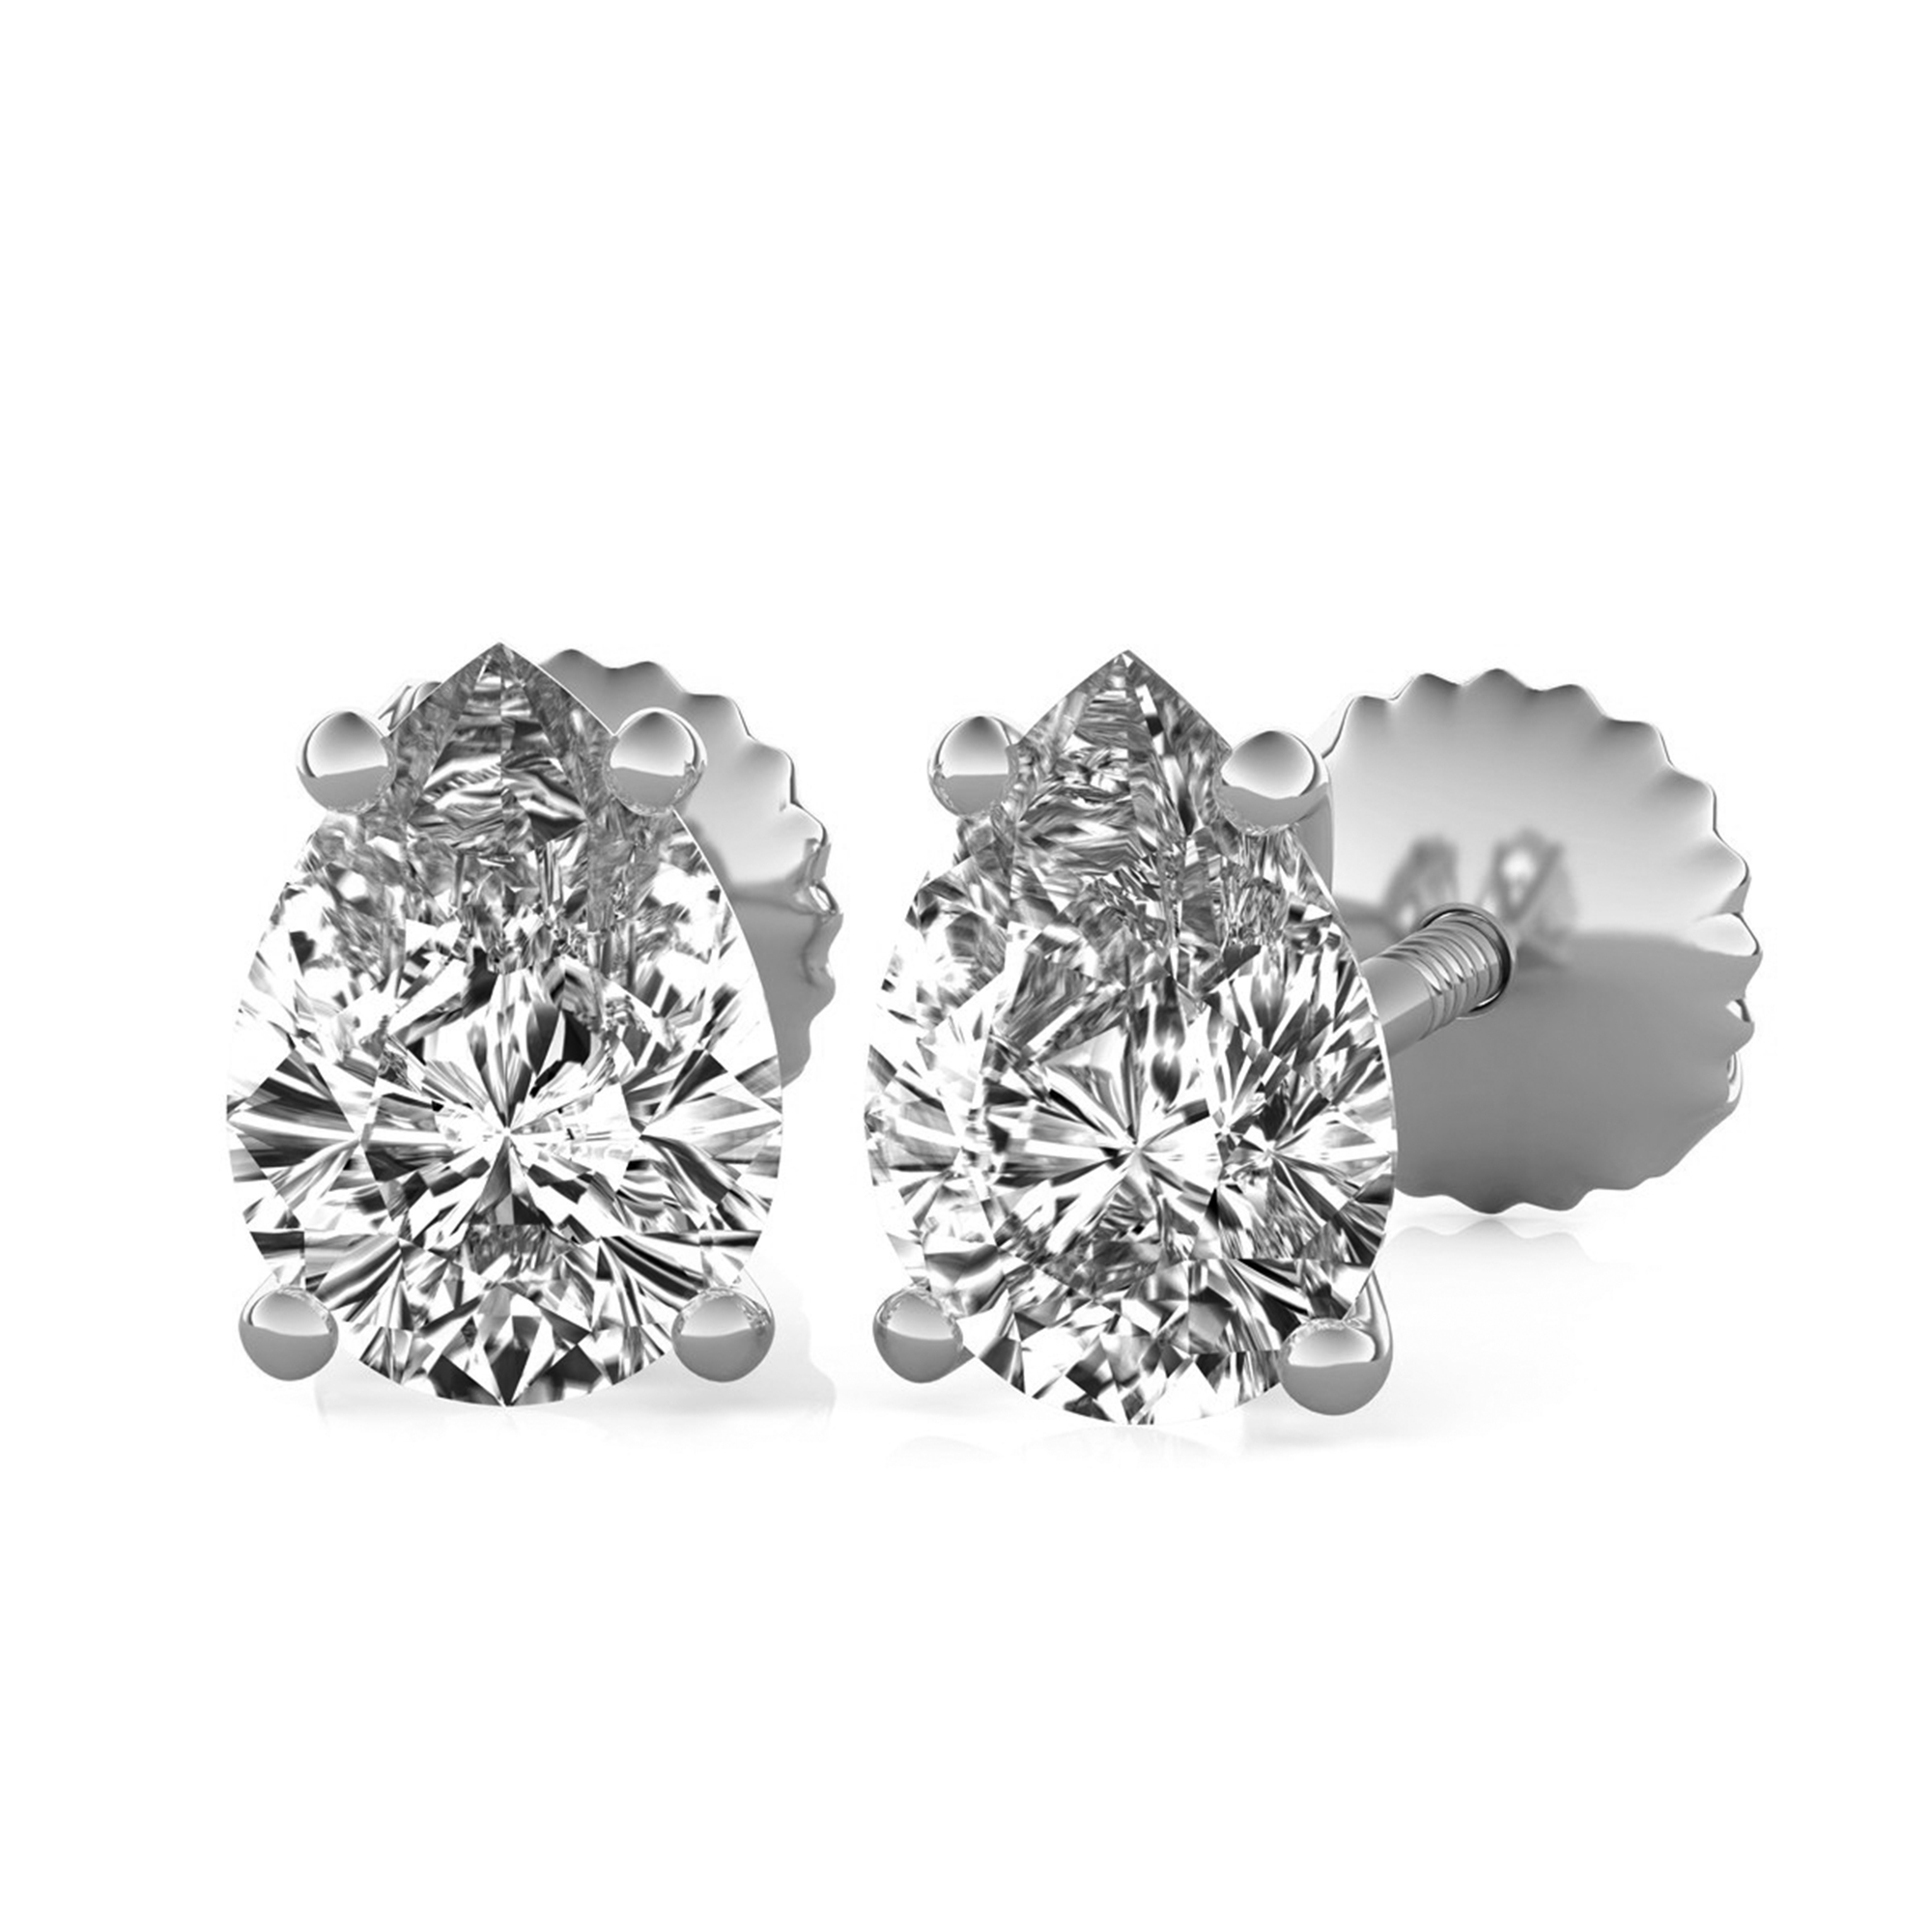 day diamond studs stud poshclassymom colvard gift charles moissanite ideas and earrings valentines